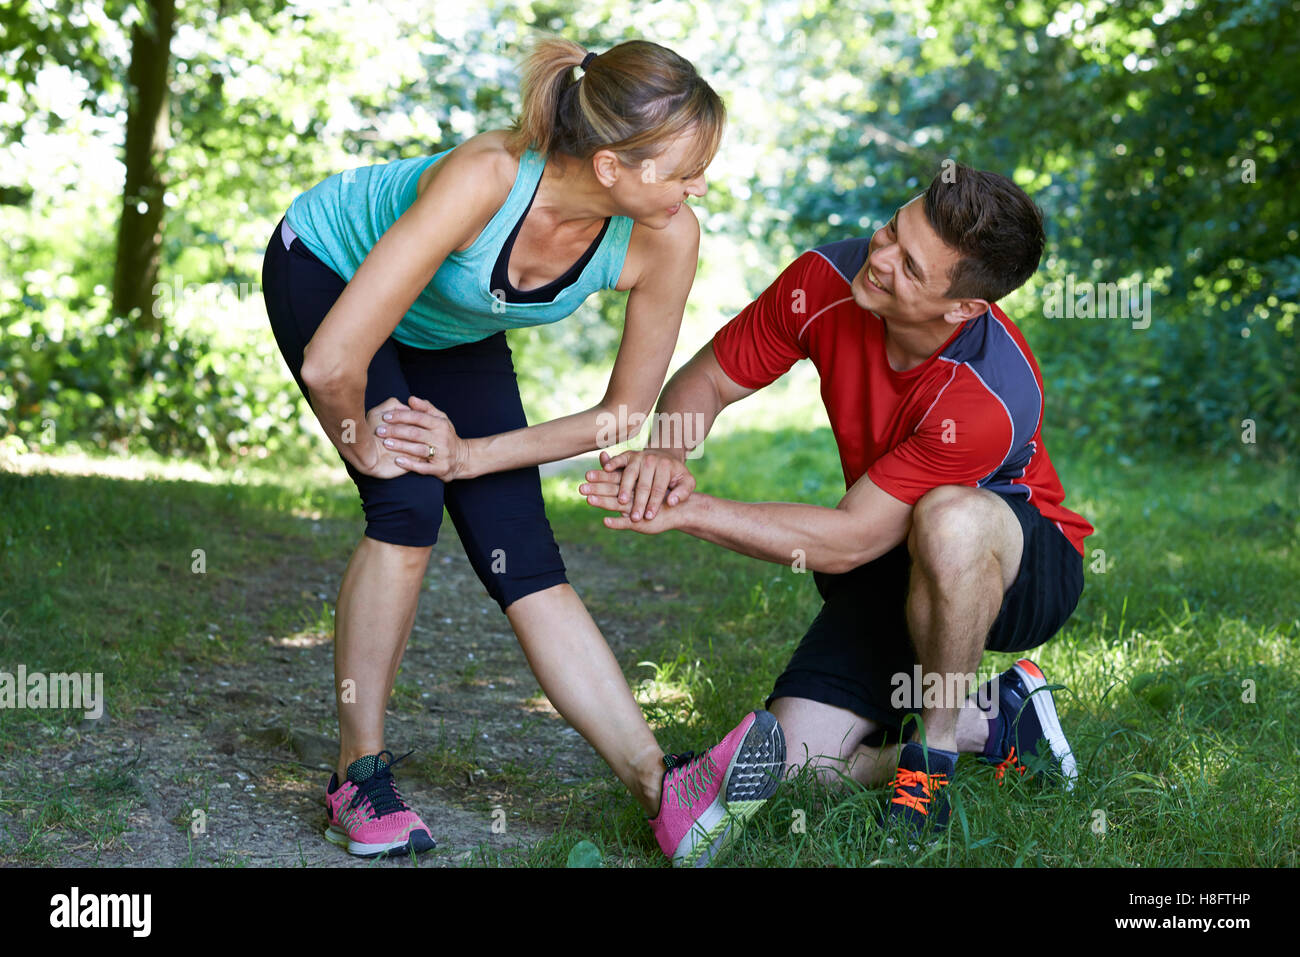 Mature Woman Exercising With Personal Trainer In Park - Stock Image